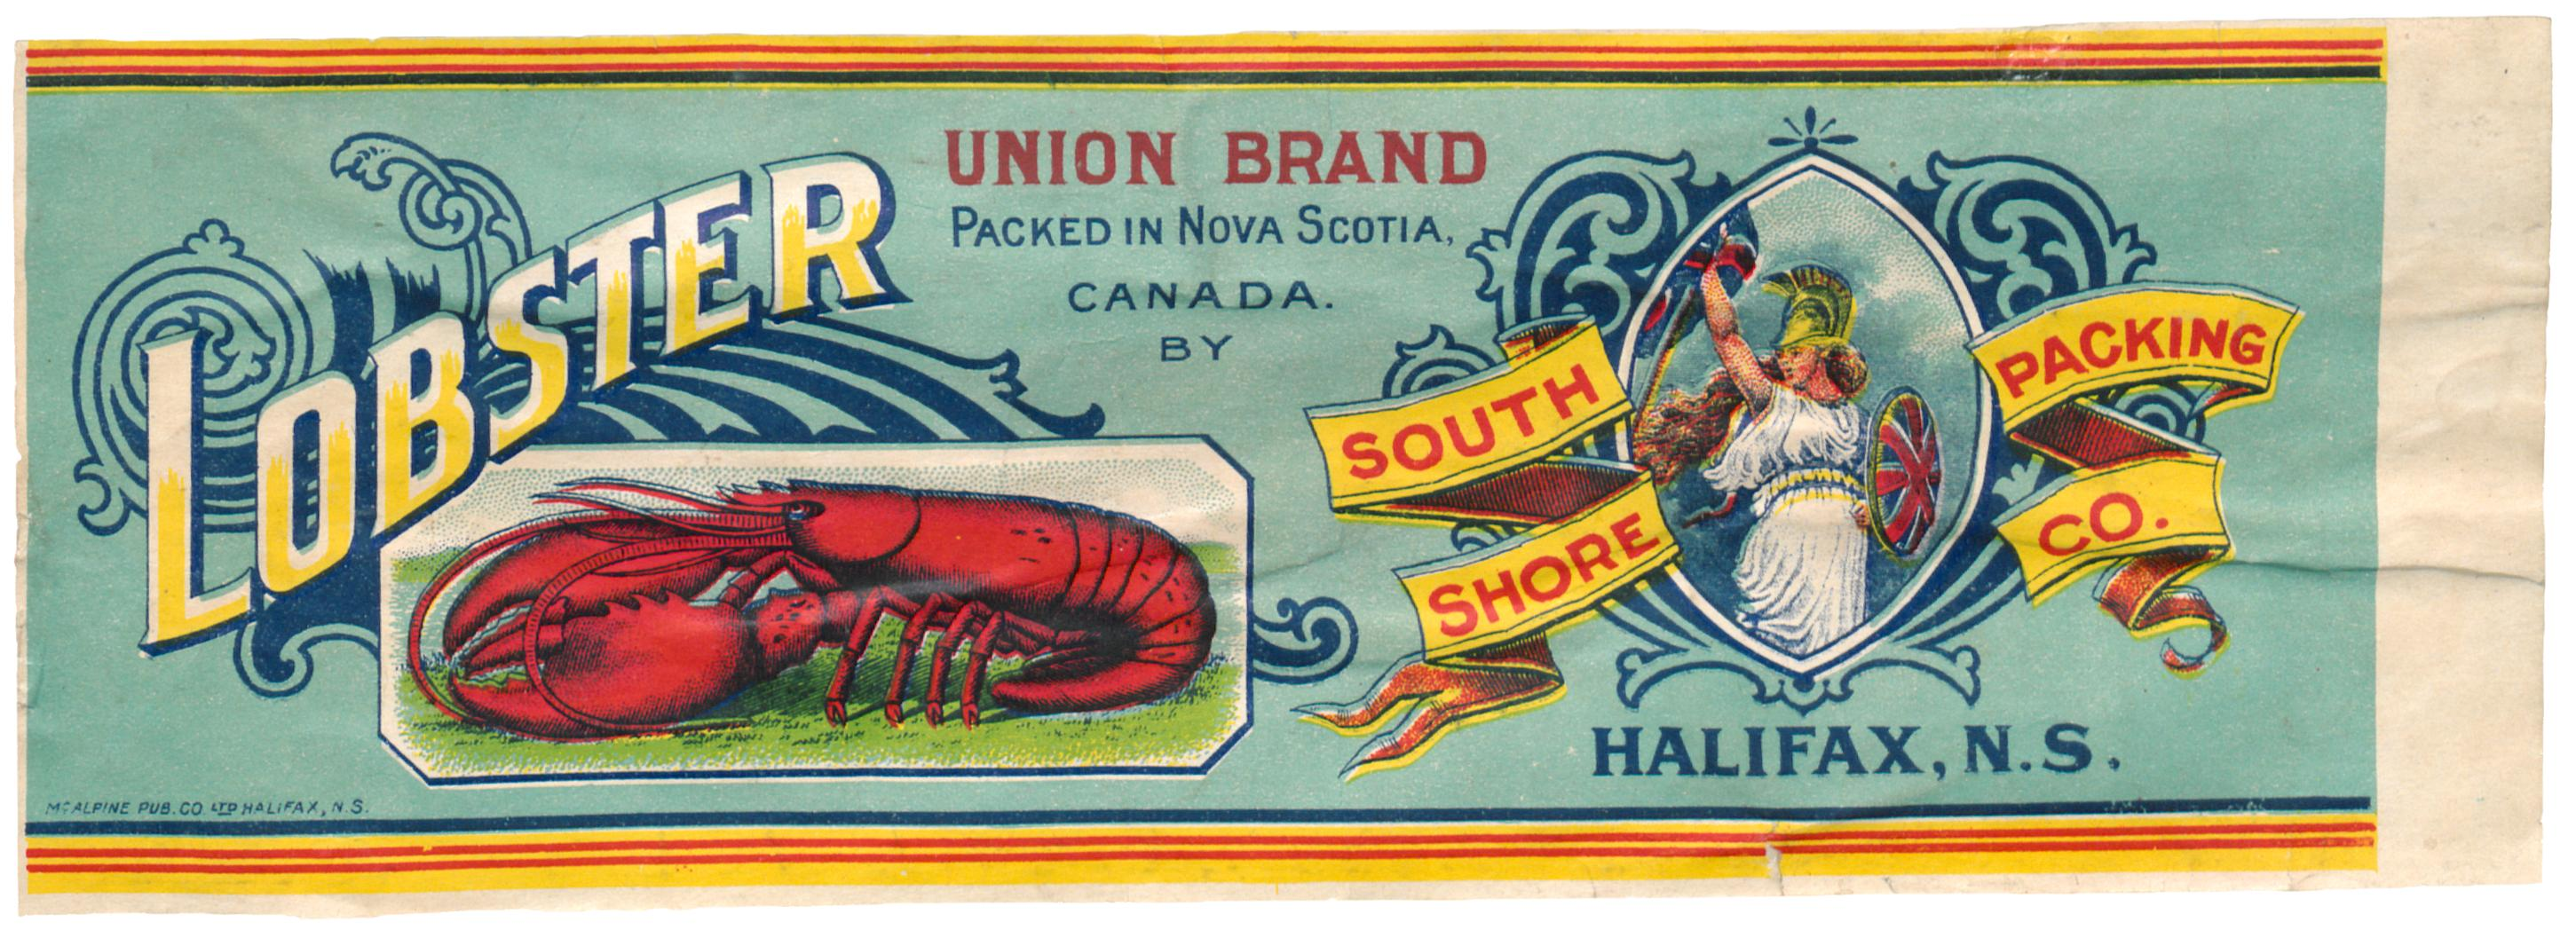 Packaging for Union Brand lobster. Long description available.